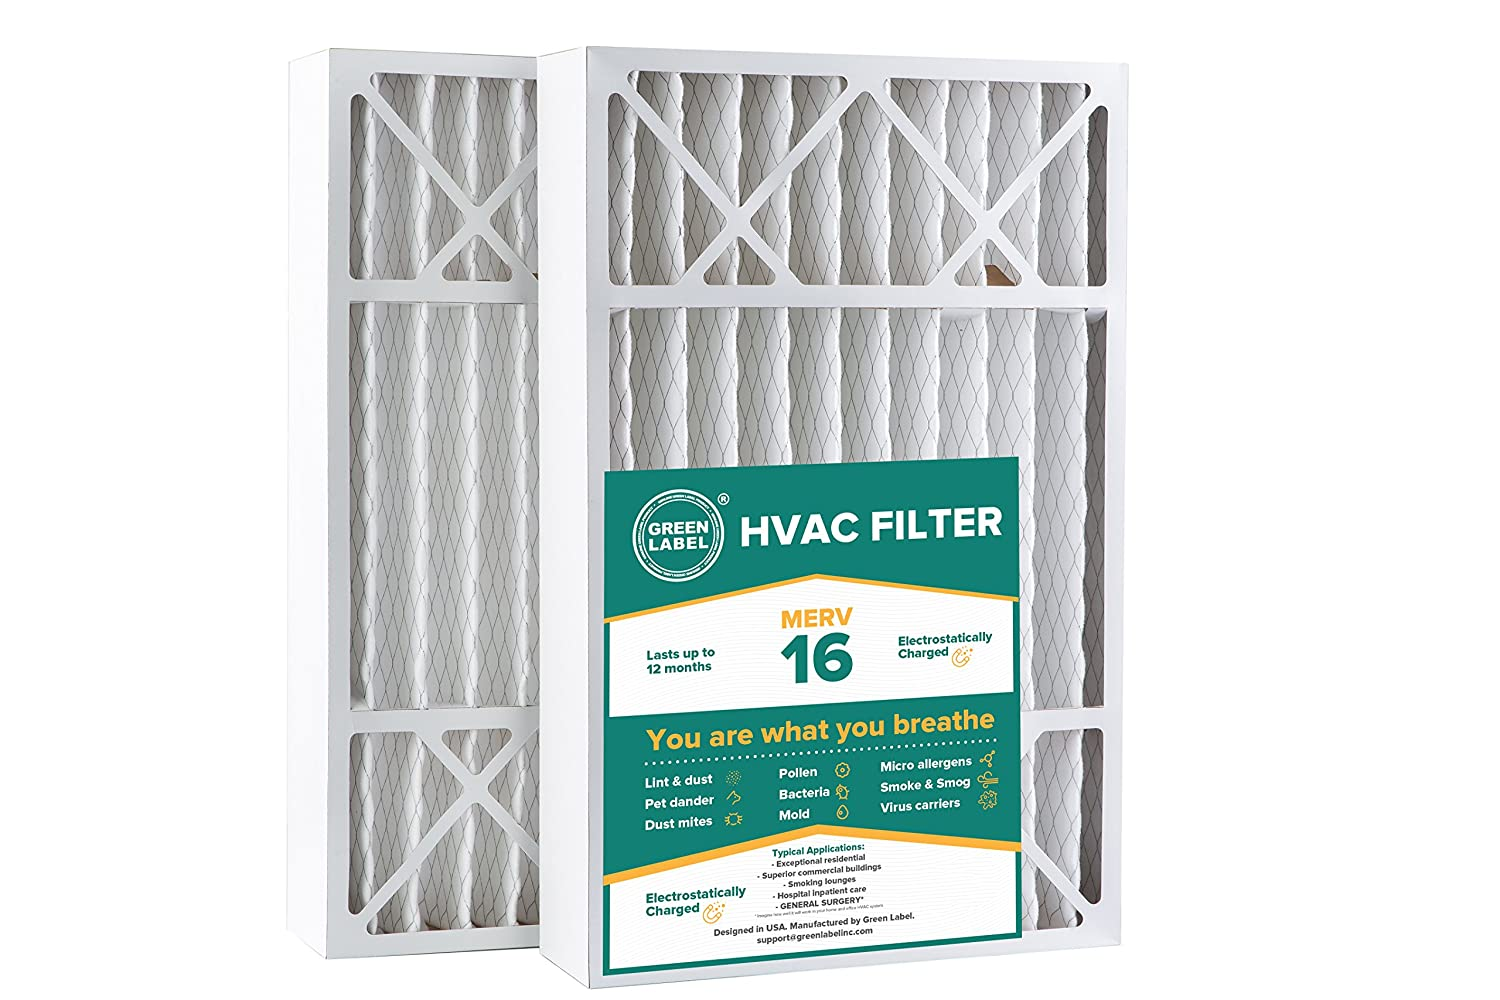 Green Label HVAC Air Filter 16x25x5, AC Furnace Air Ultra Cleaning Filter MERV 16 - Pack of 2